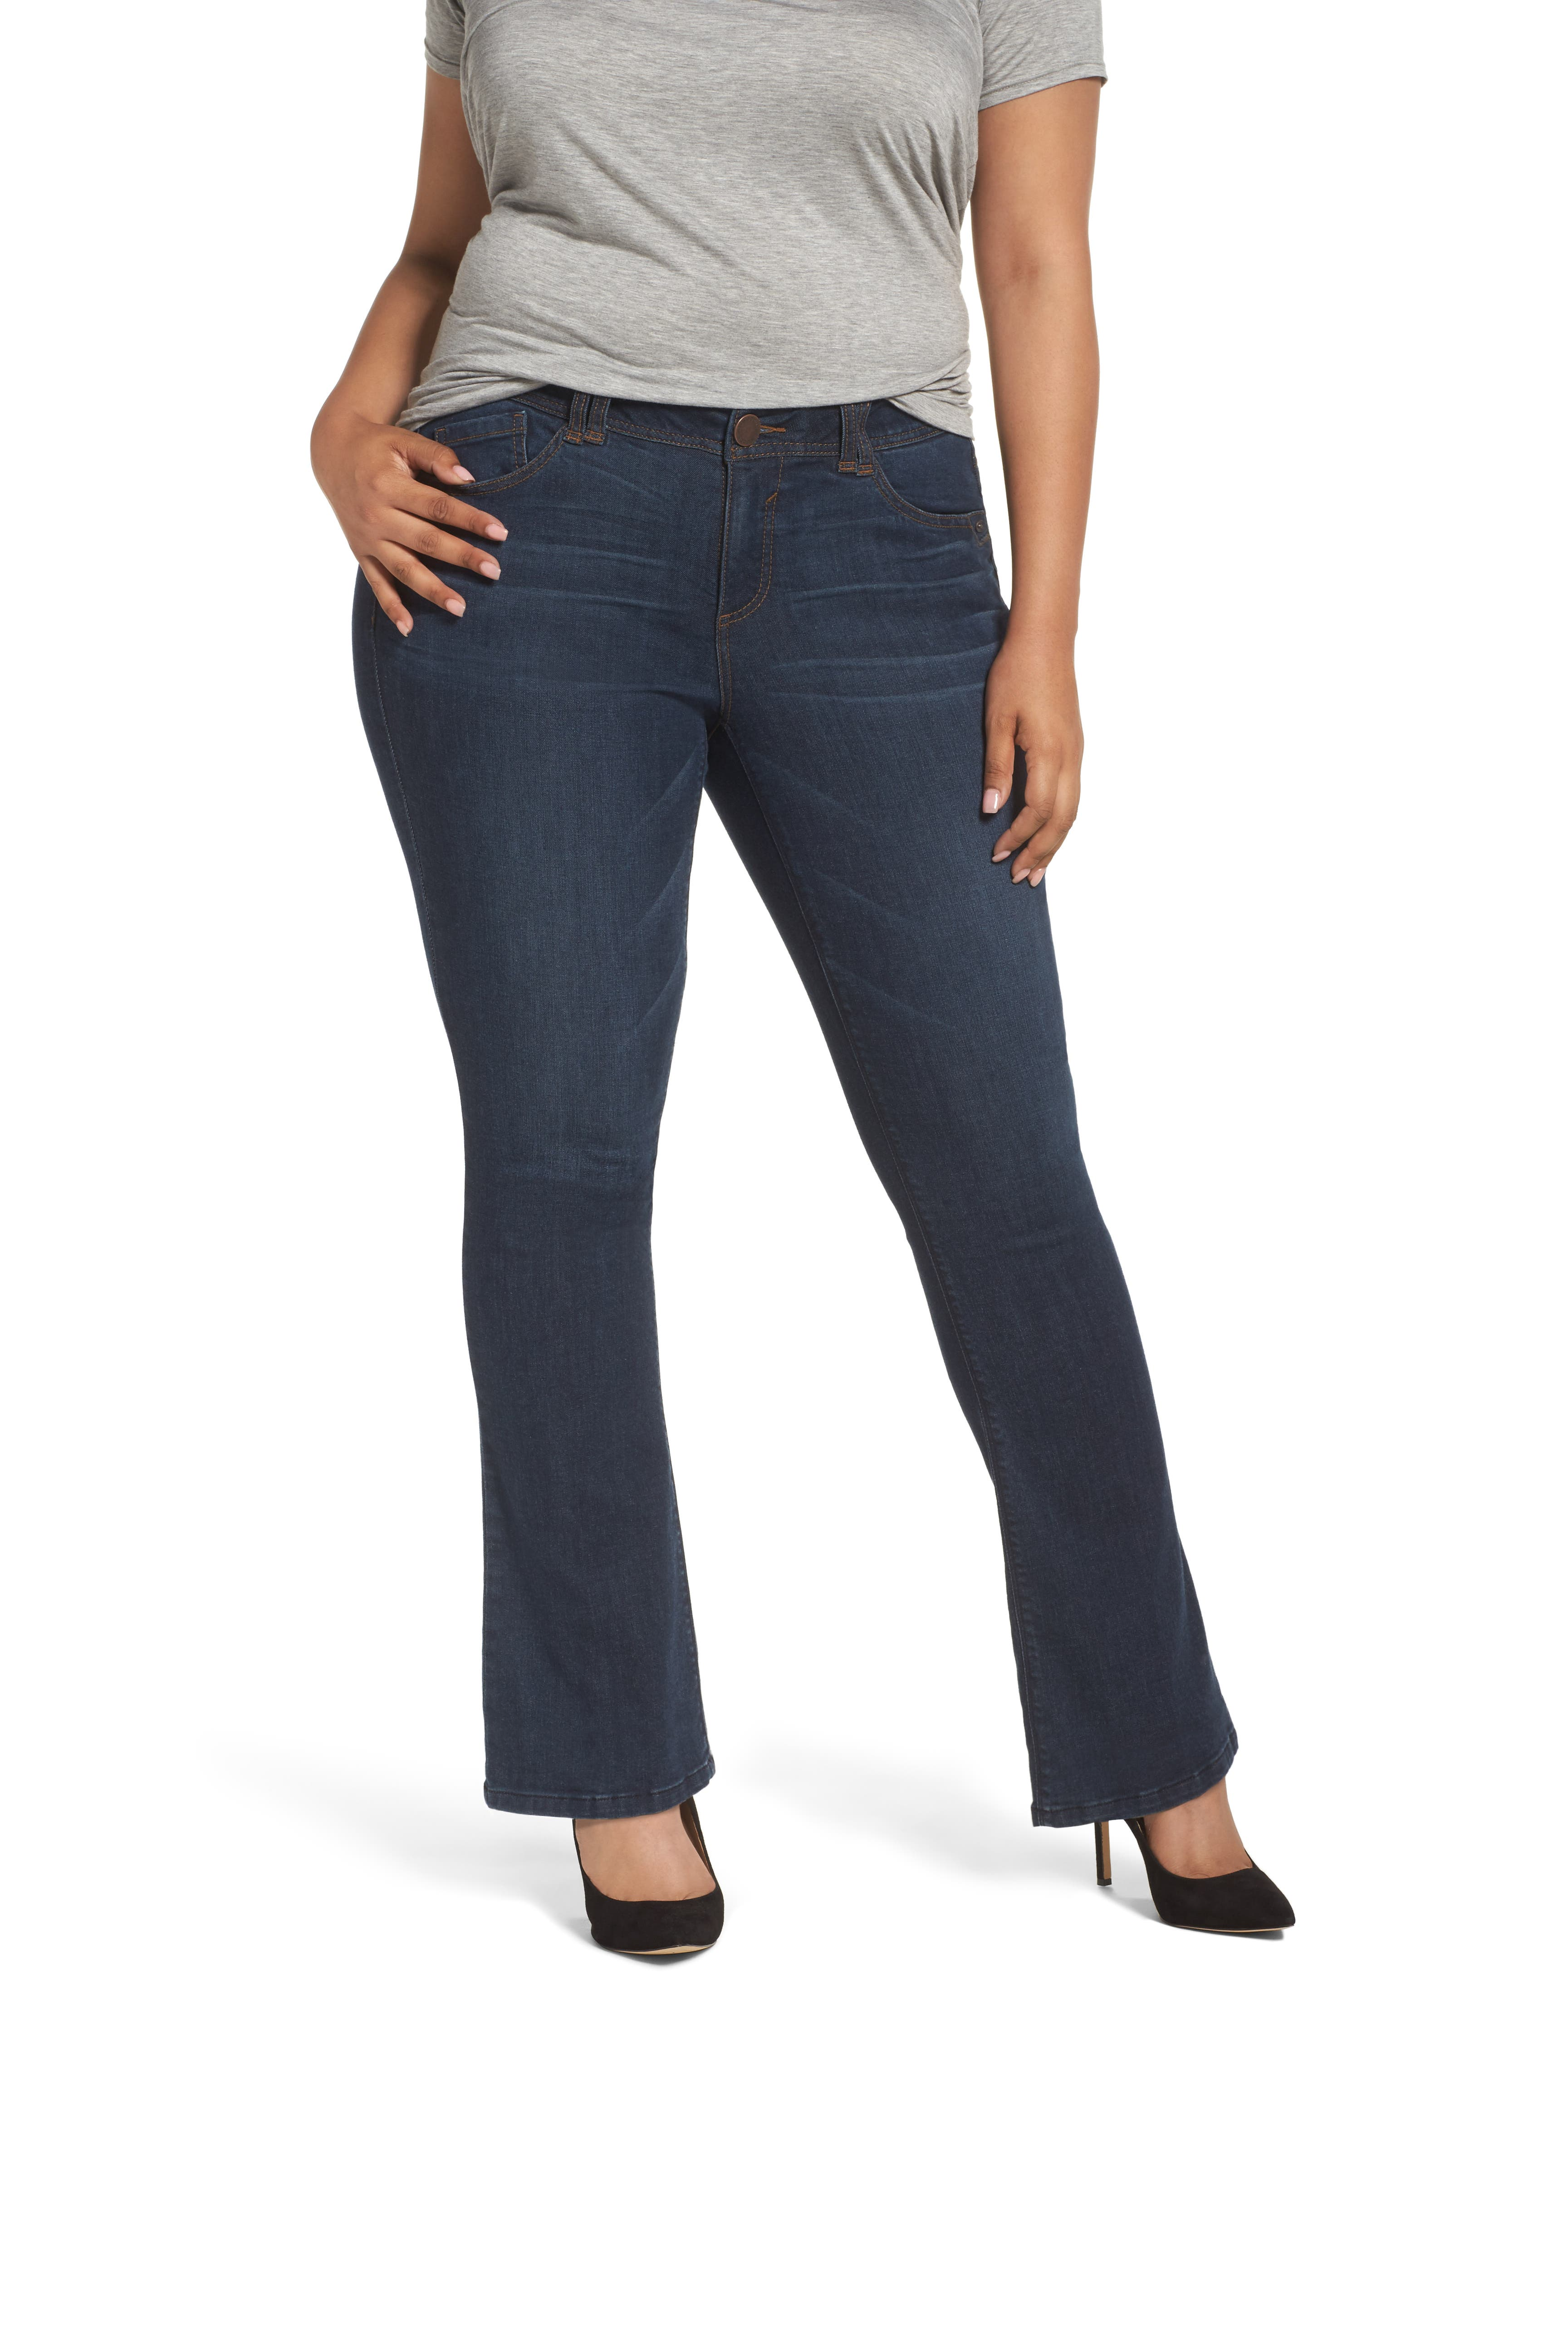 Alternate Image 1 Selected - Wit & Wisdom Ab-solution Itty Bitty Bootcut Jeans (Plus Size) (Nordstrom Exclusive)